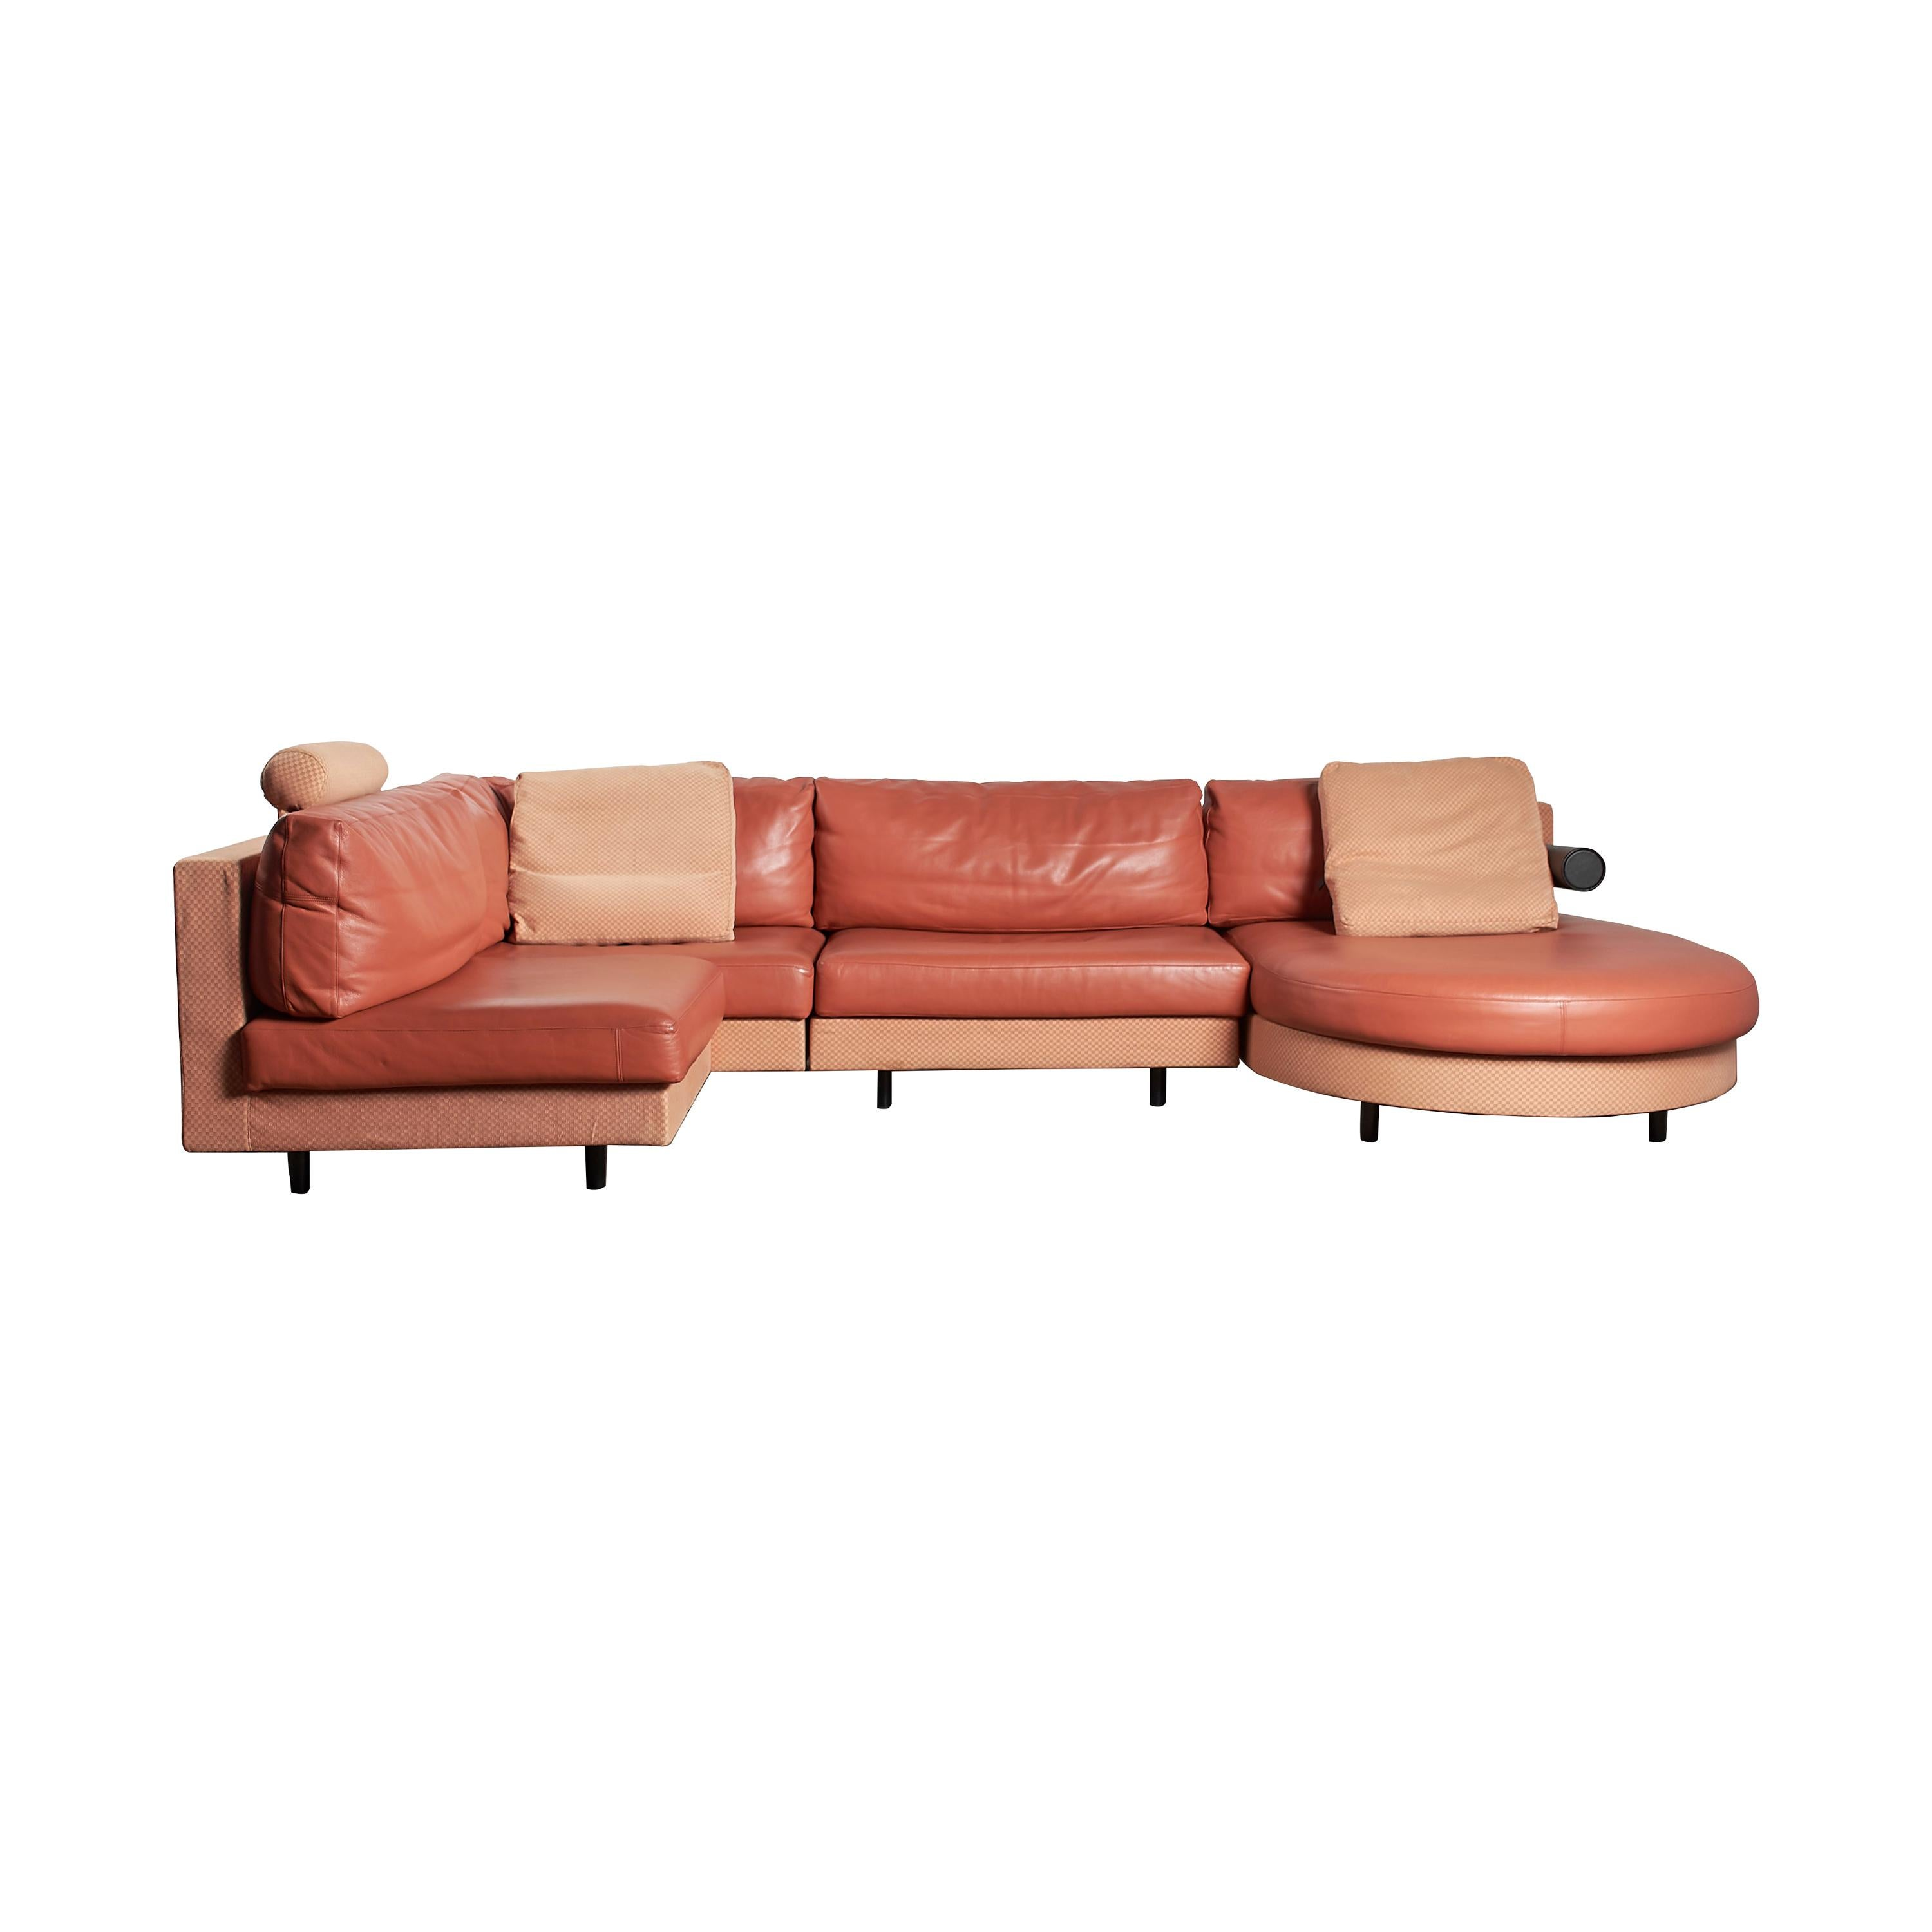 """4-Piece """"Sity"""" Sectional Sofa in Terracotta Leather by Citterio for B&B Italia"""